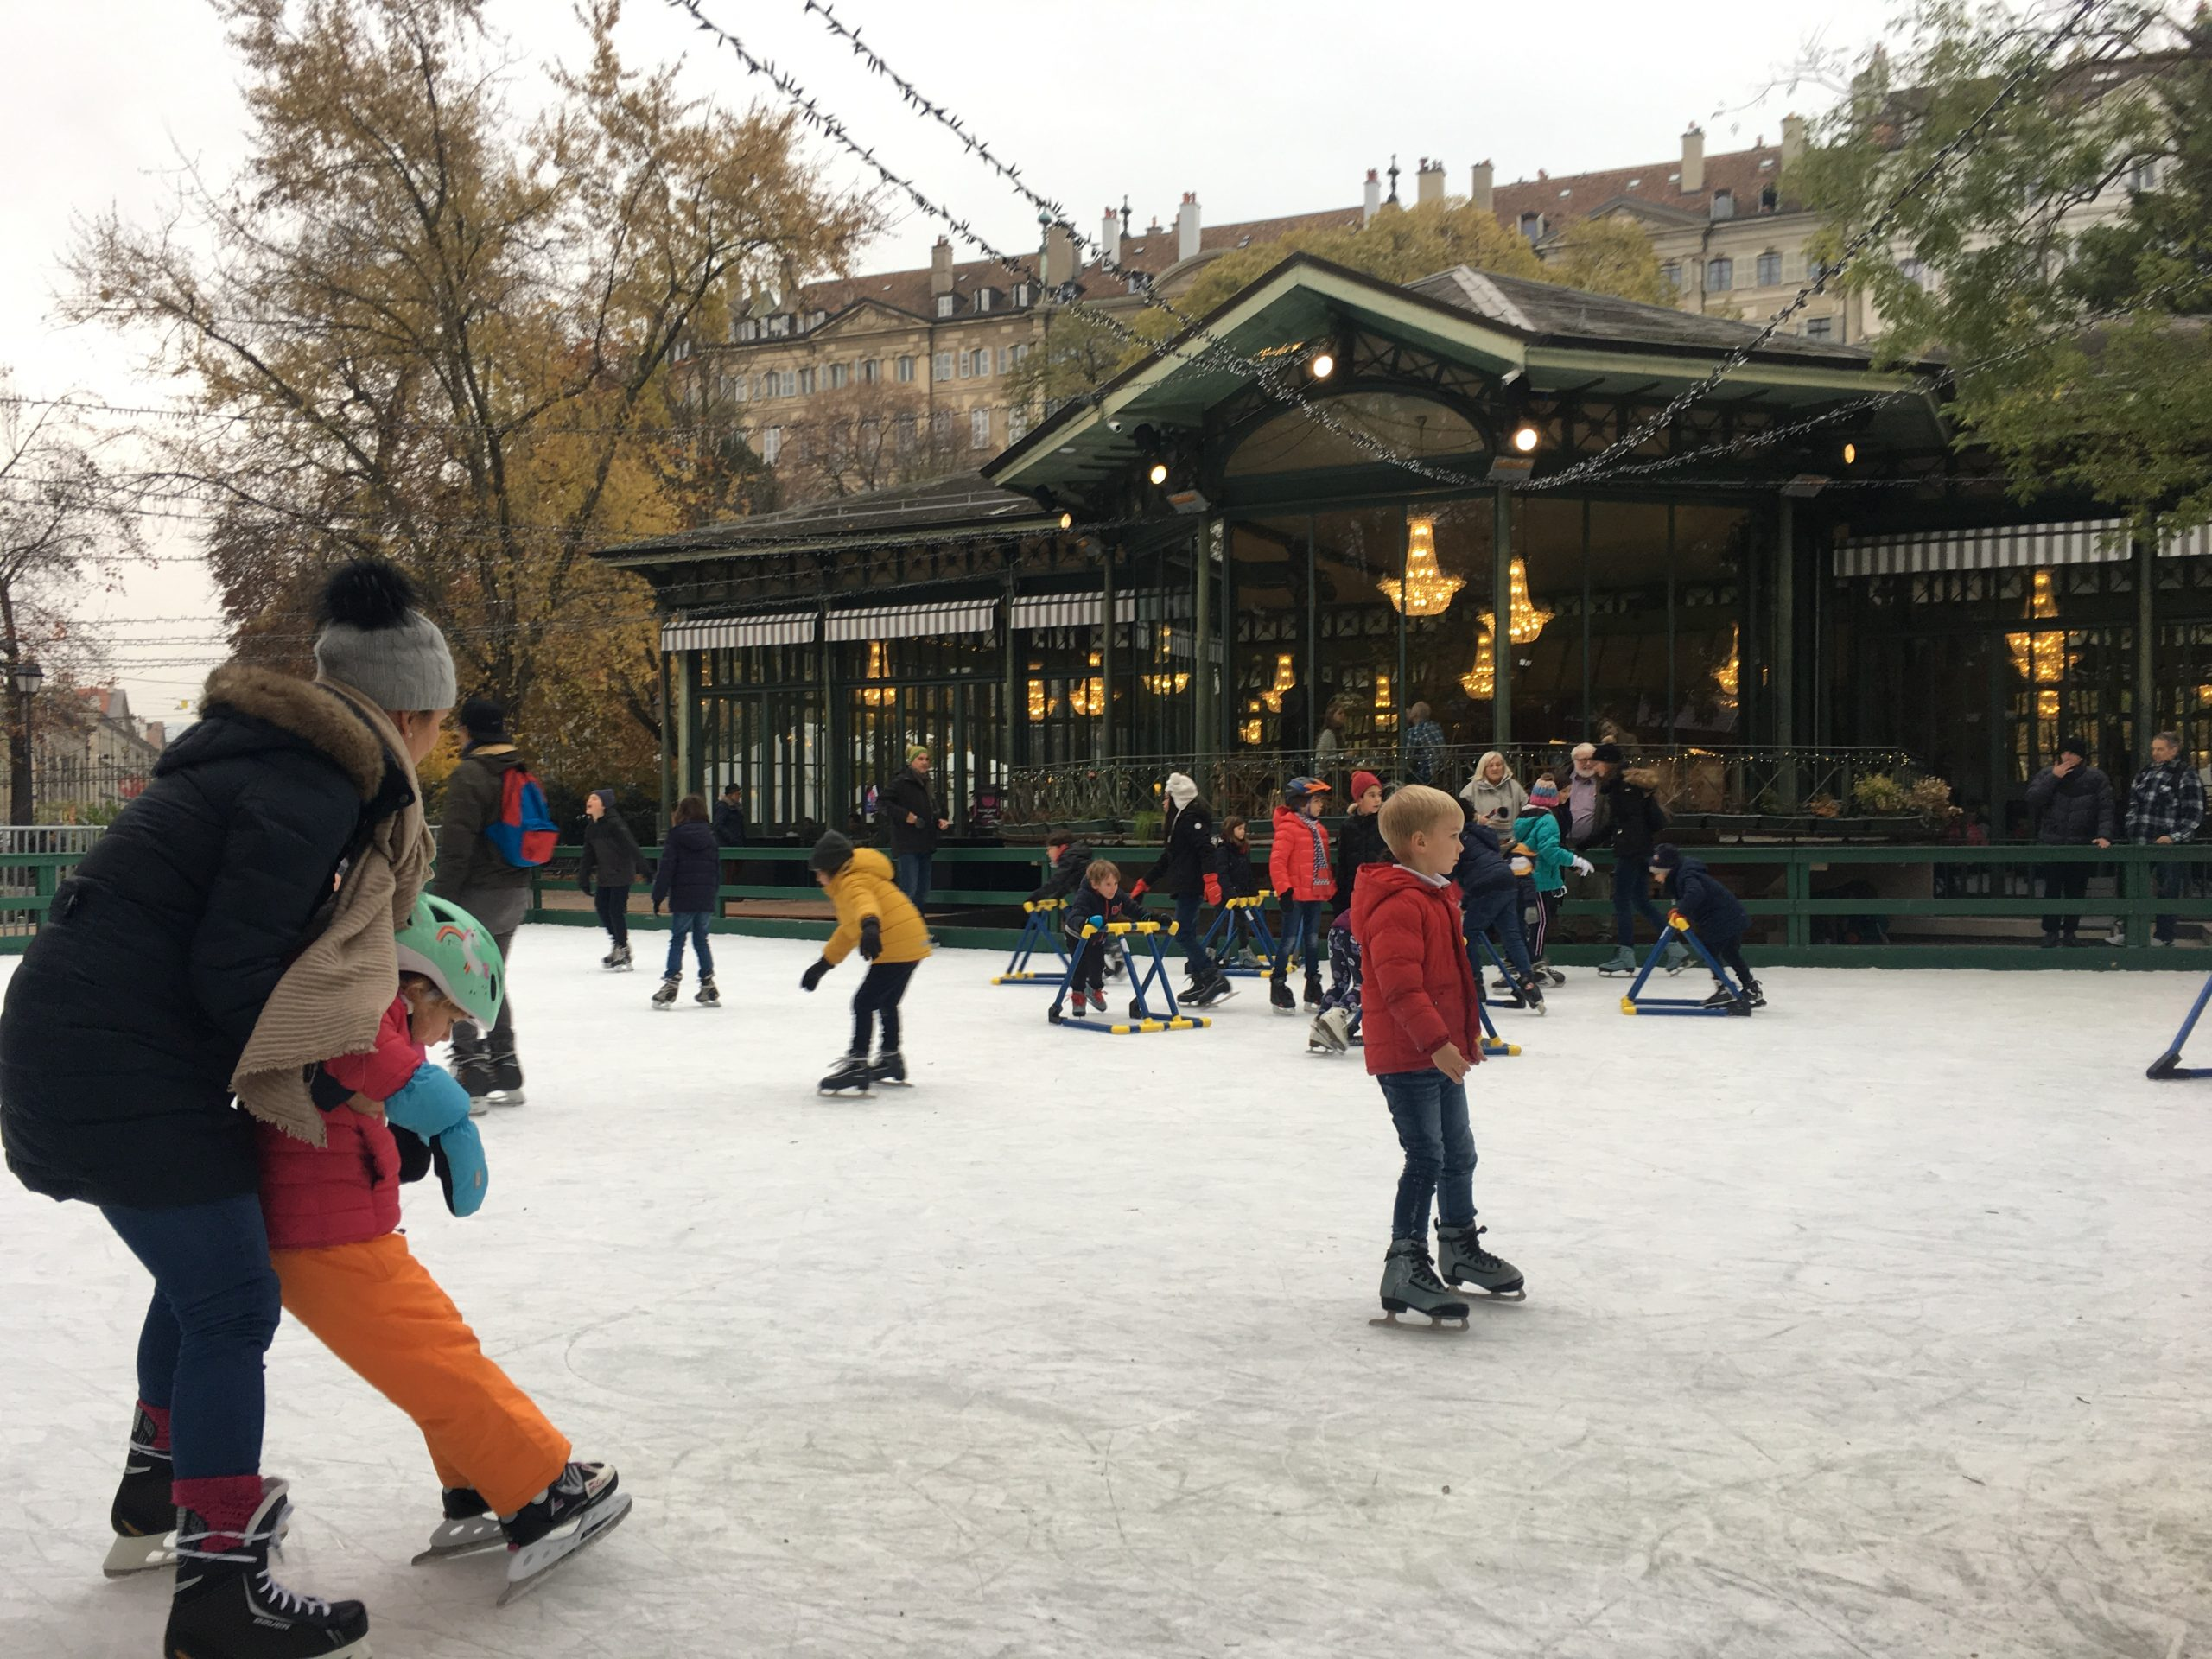 Christmas in Switzerland: Ice skating